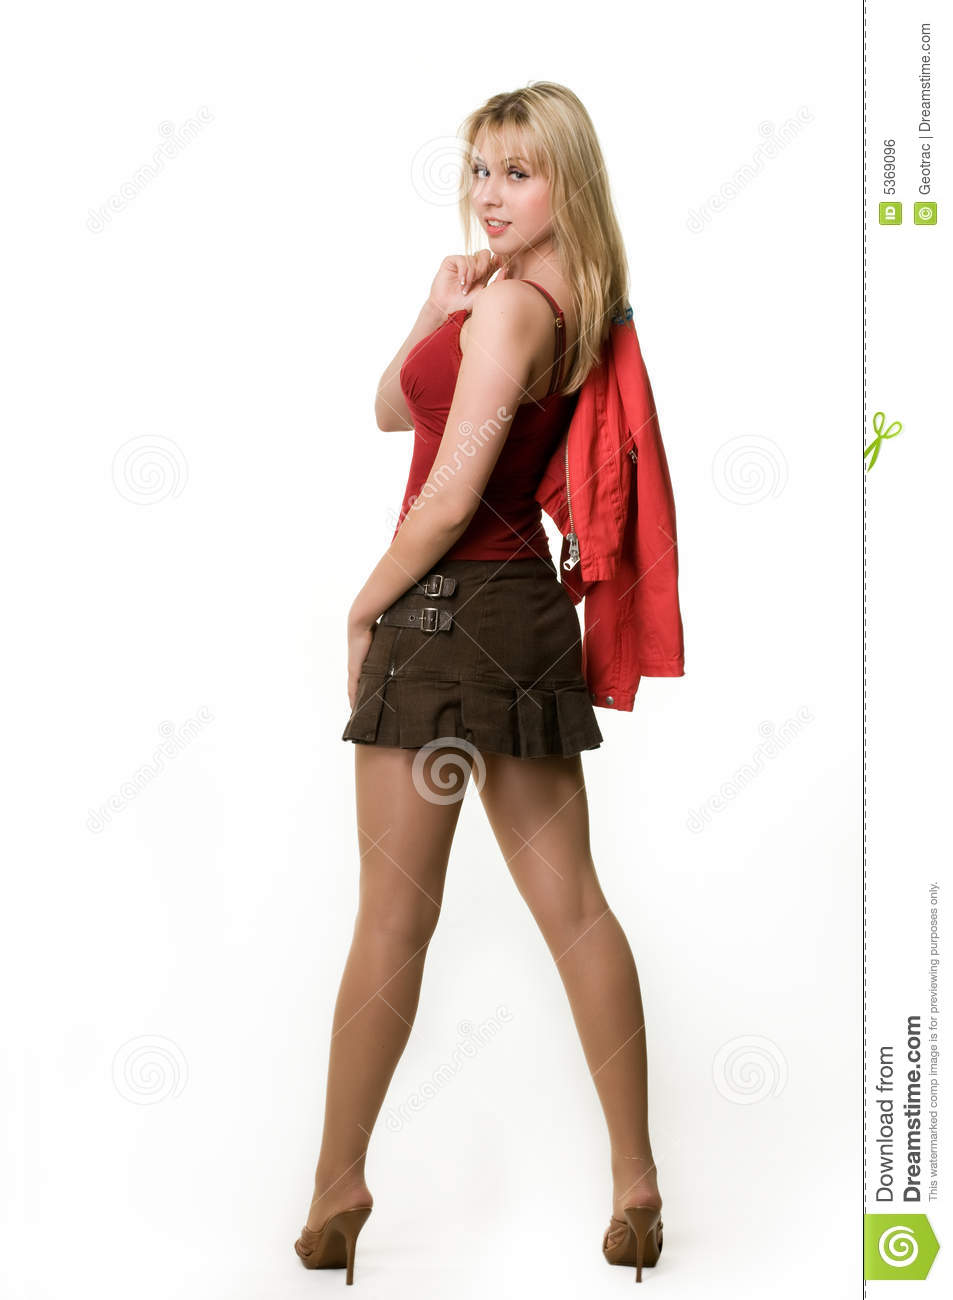 Unique Young Brunette Woman Wearing A Short Skirt Stock Image  Image